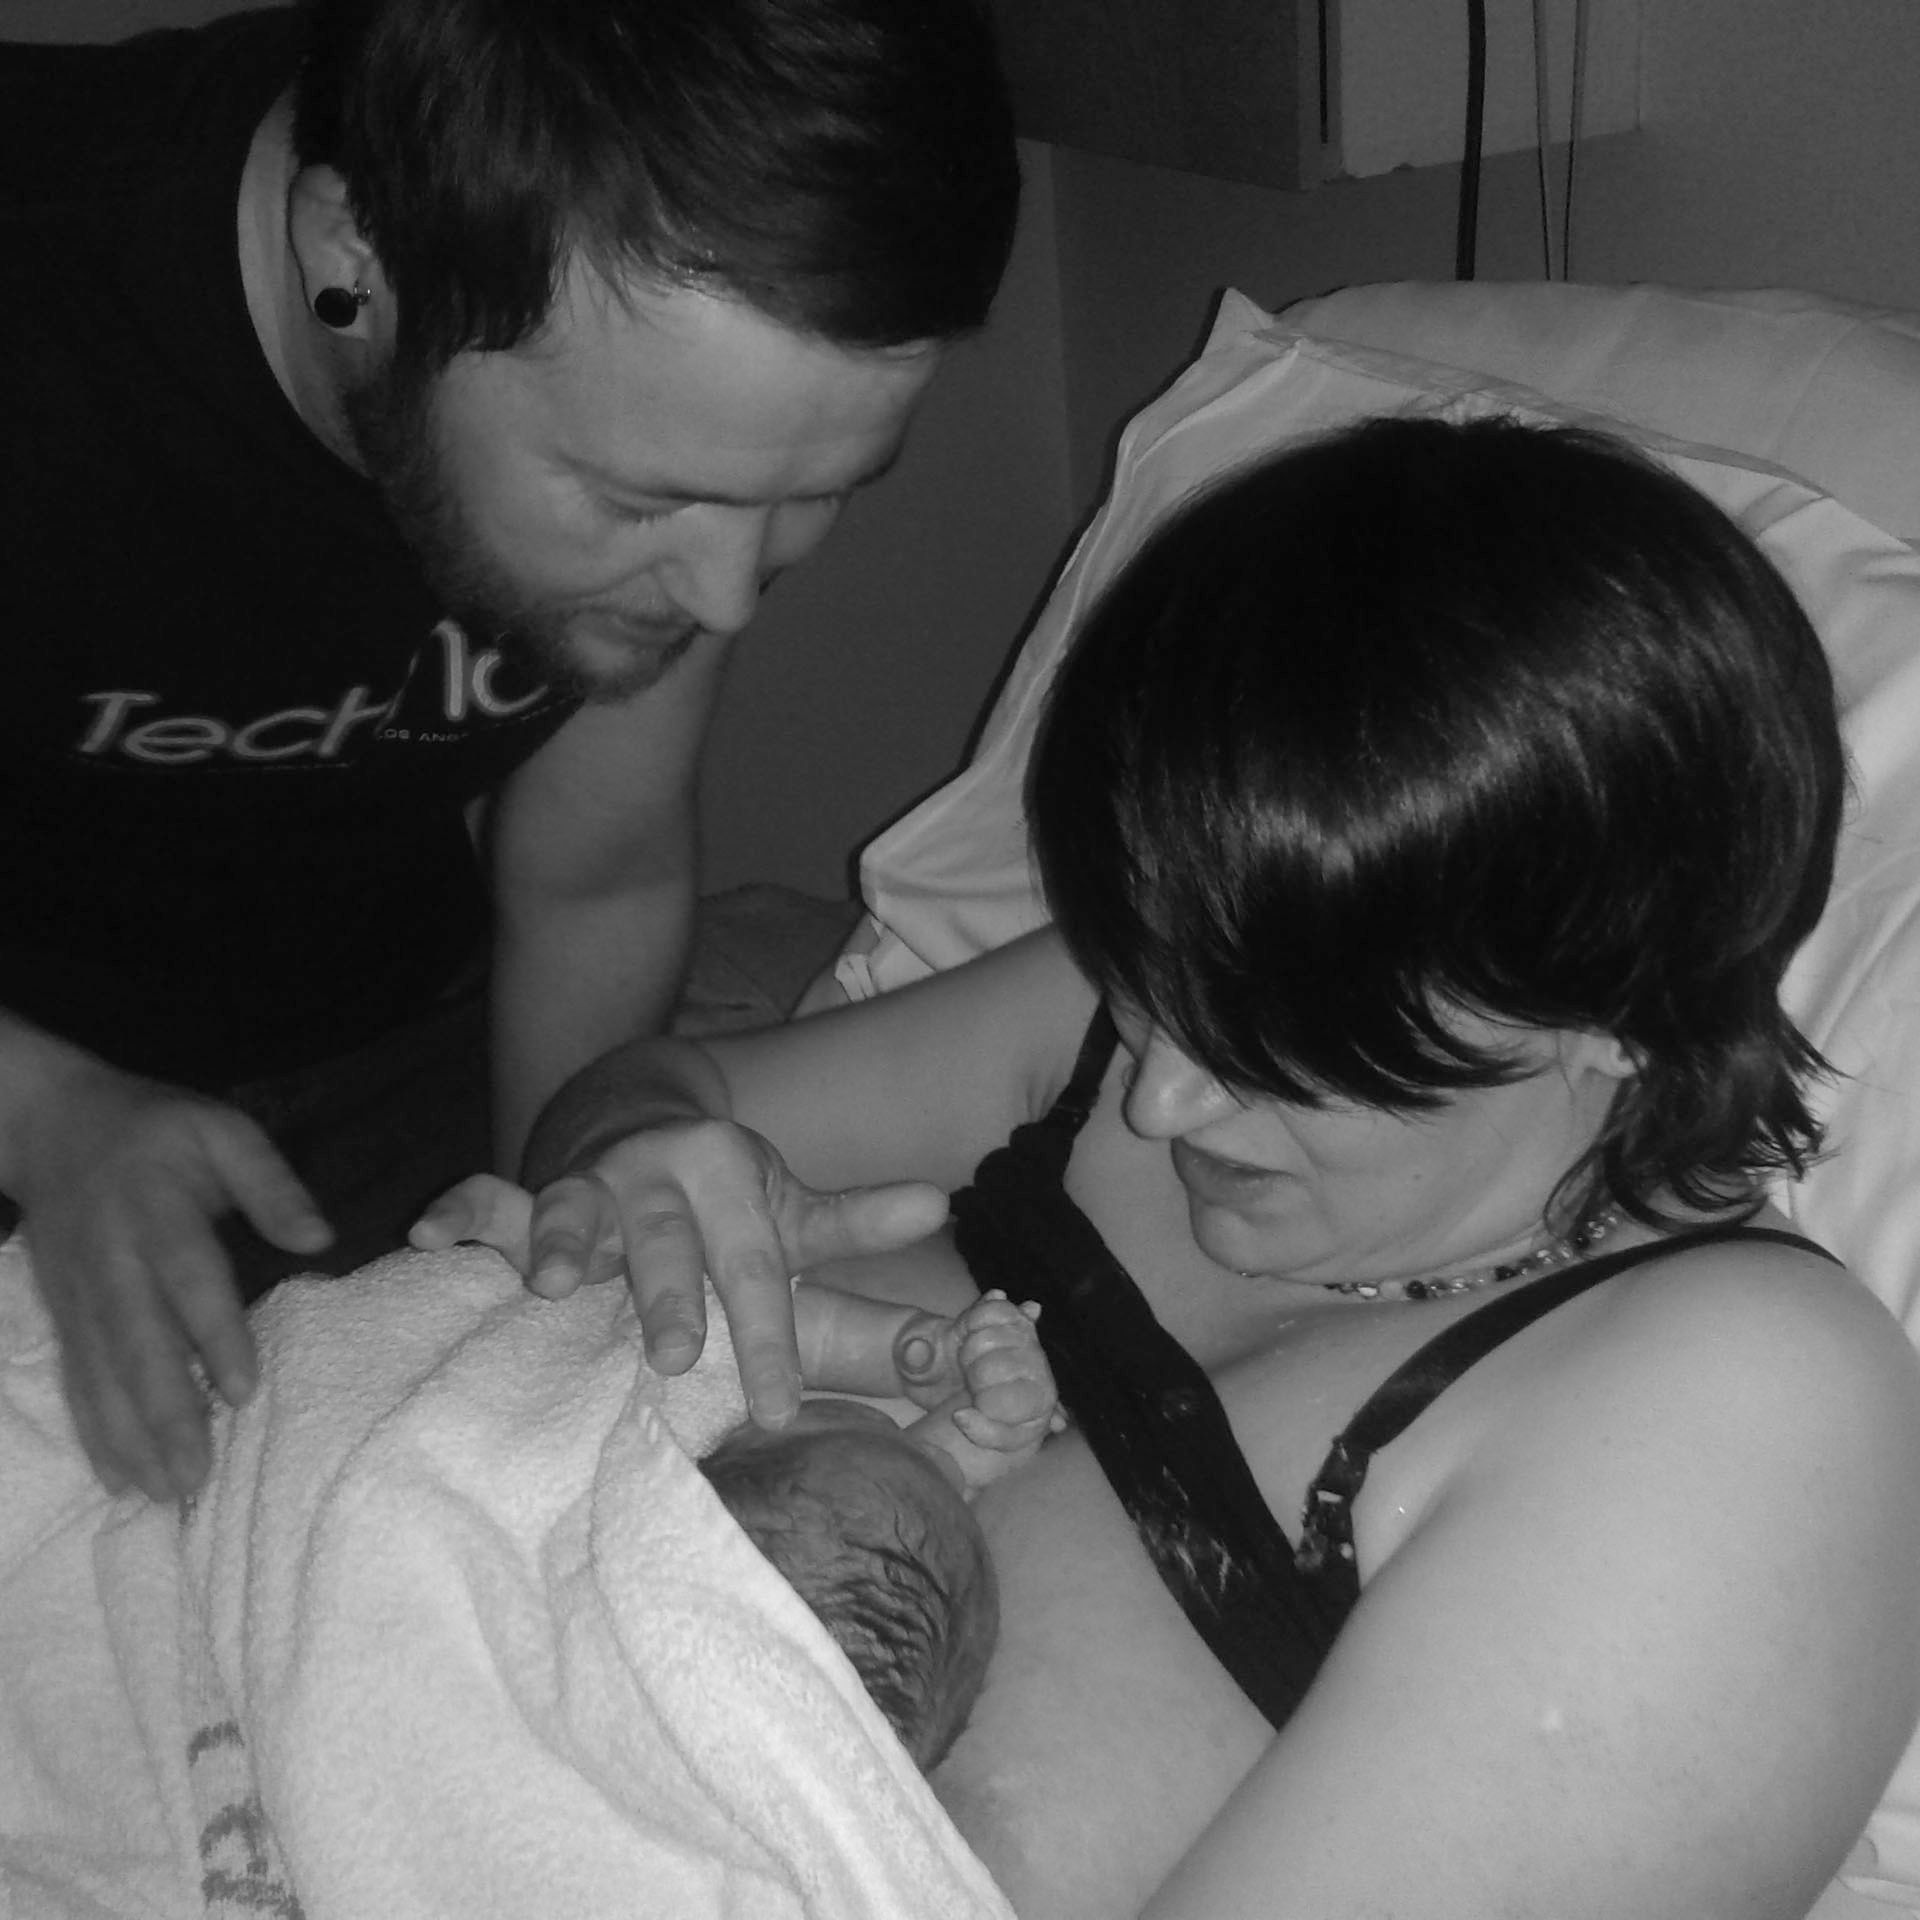 A woman holds her newborn baby to her chest, and touches her face with a finger. Her partner looks down on them both.